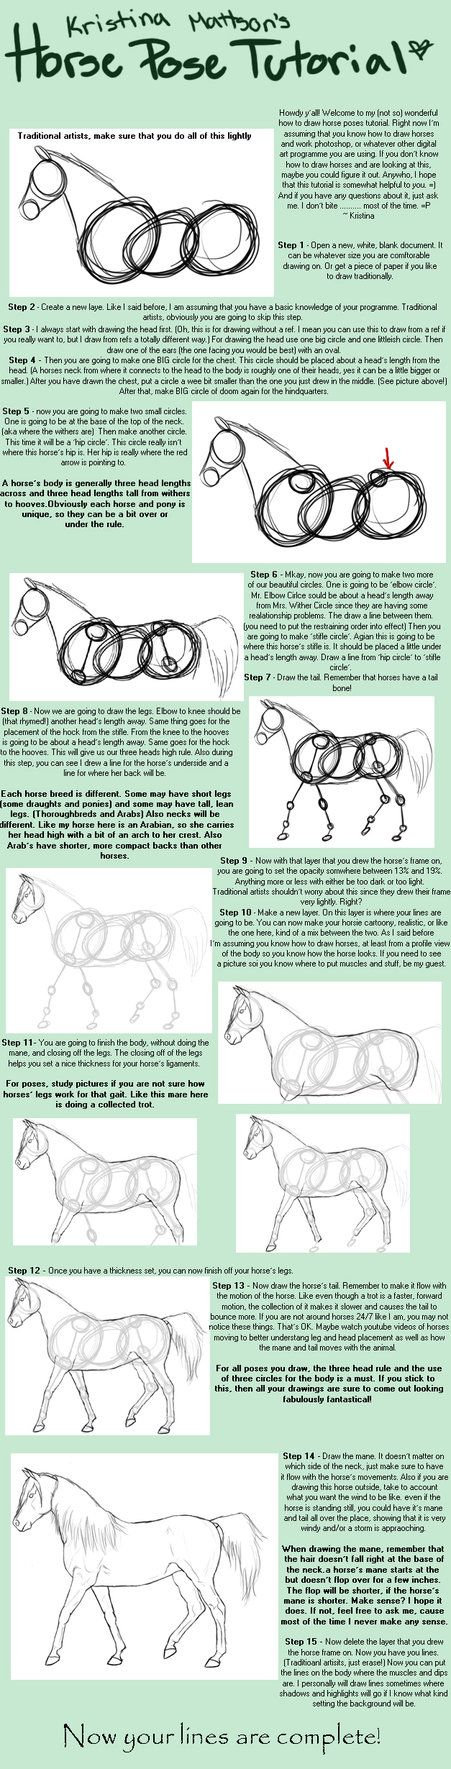 Horse Pose Tutorial by Abiadura on deviantART Art Ed Central